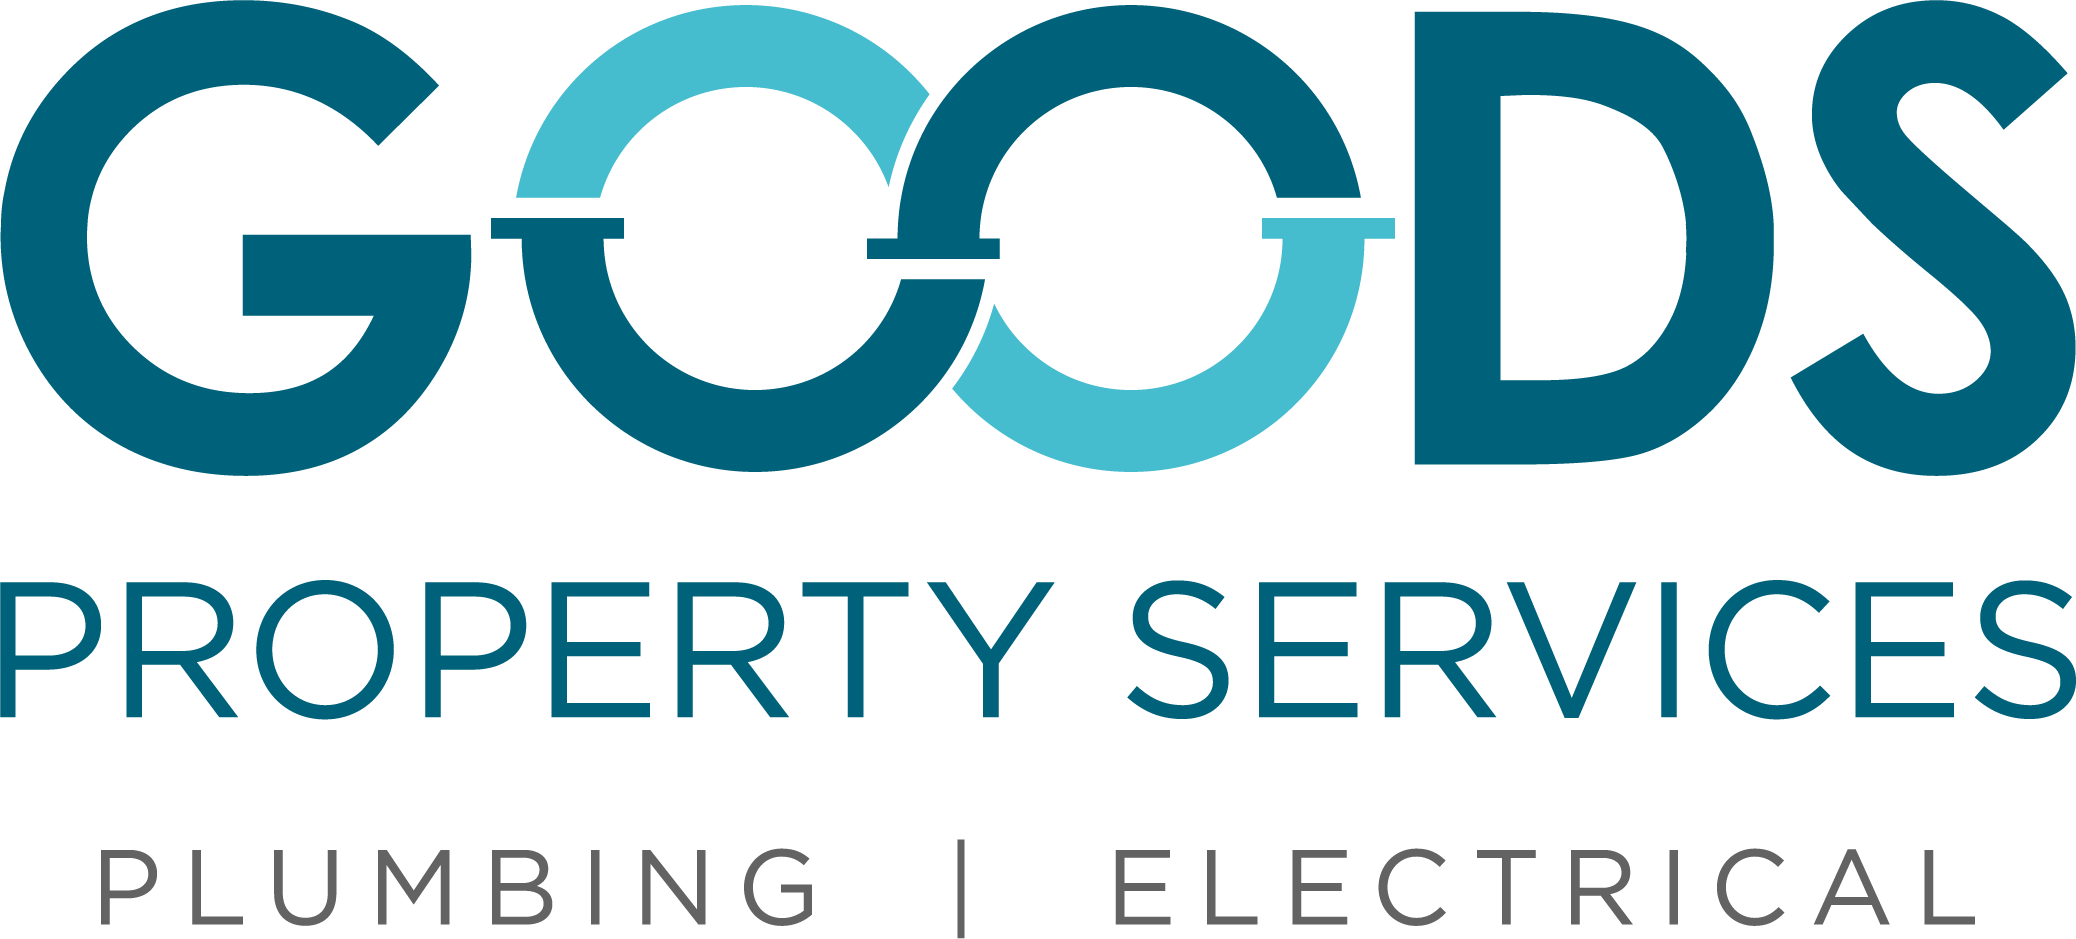 Goods Property Services